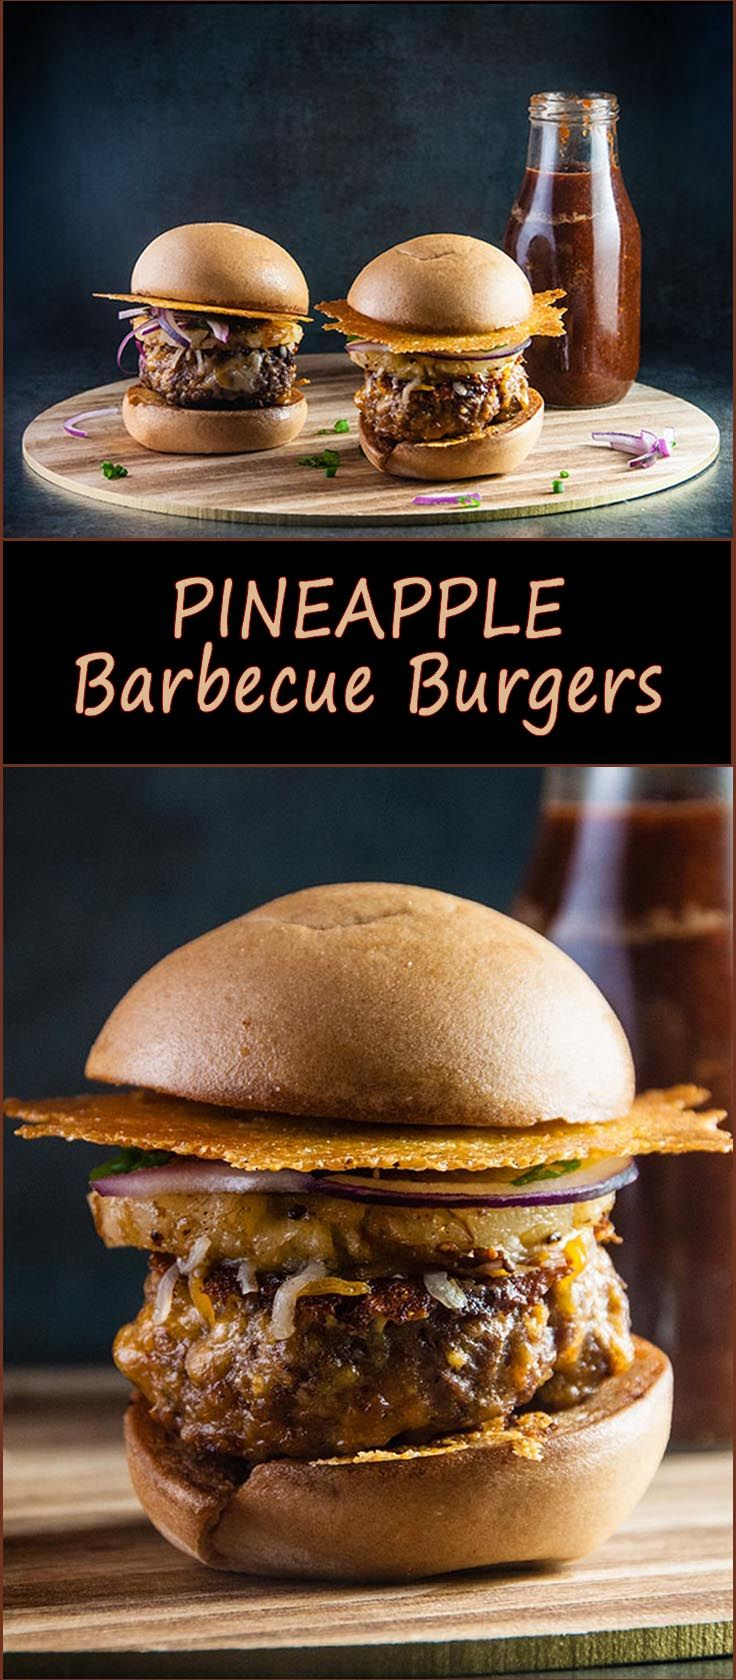 Pineapple Barbecue Burgers from www.SeasonedSprinkles.com